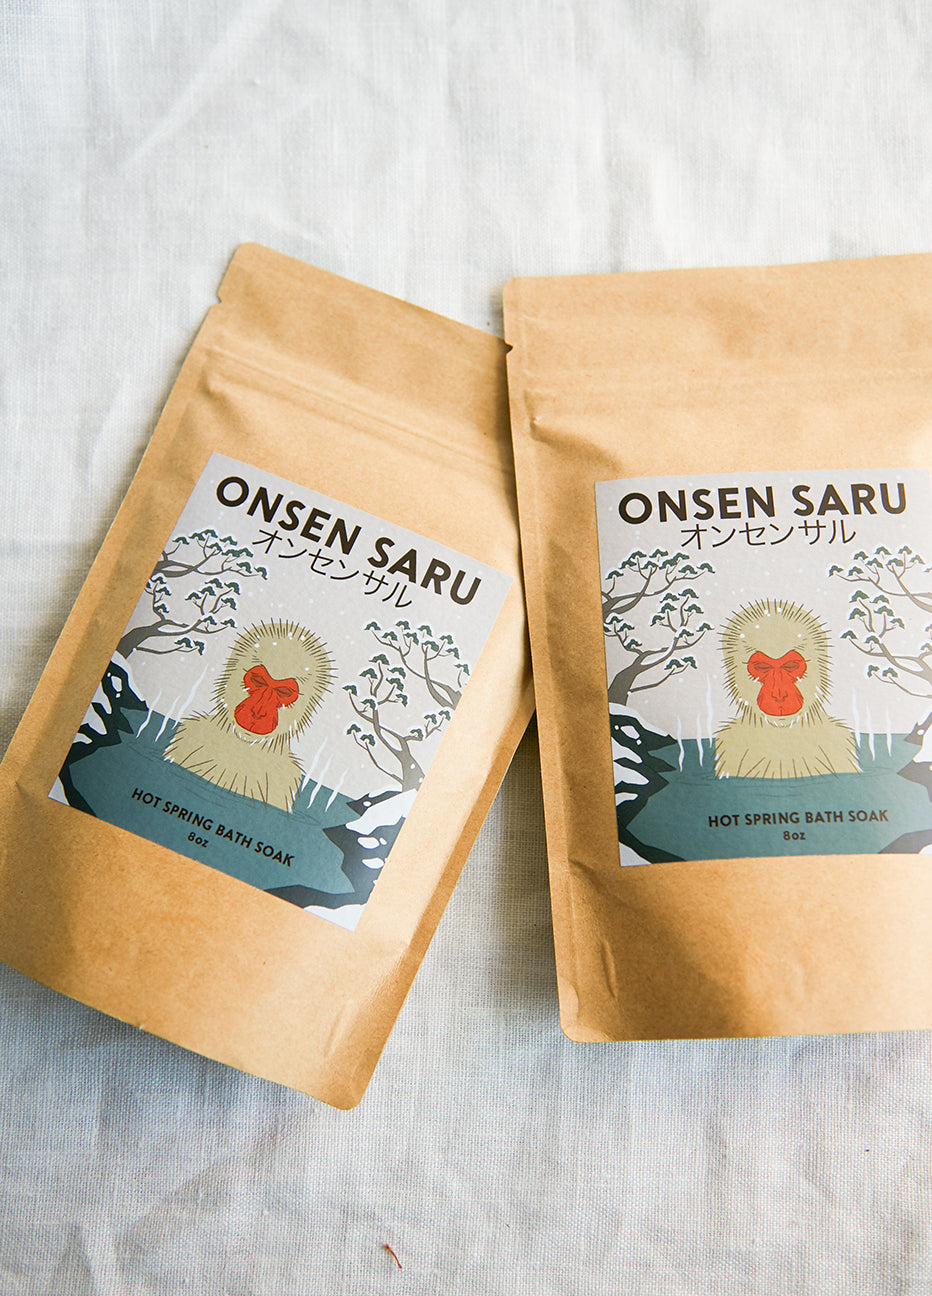 Onsen Saru Hot Spring Bath Soak